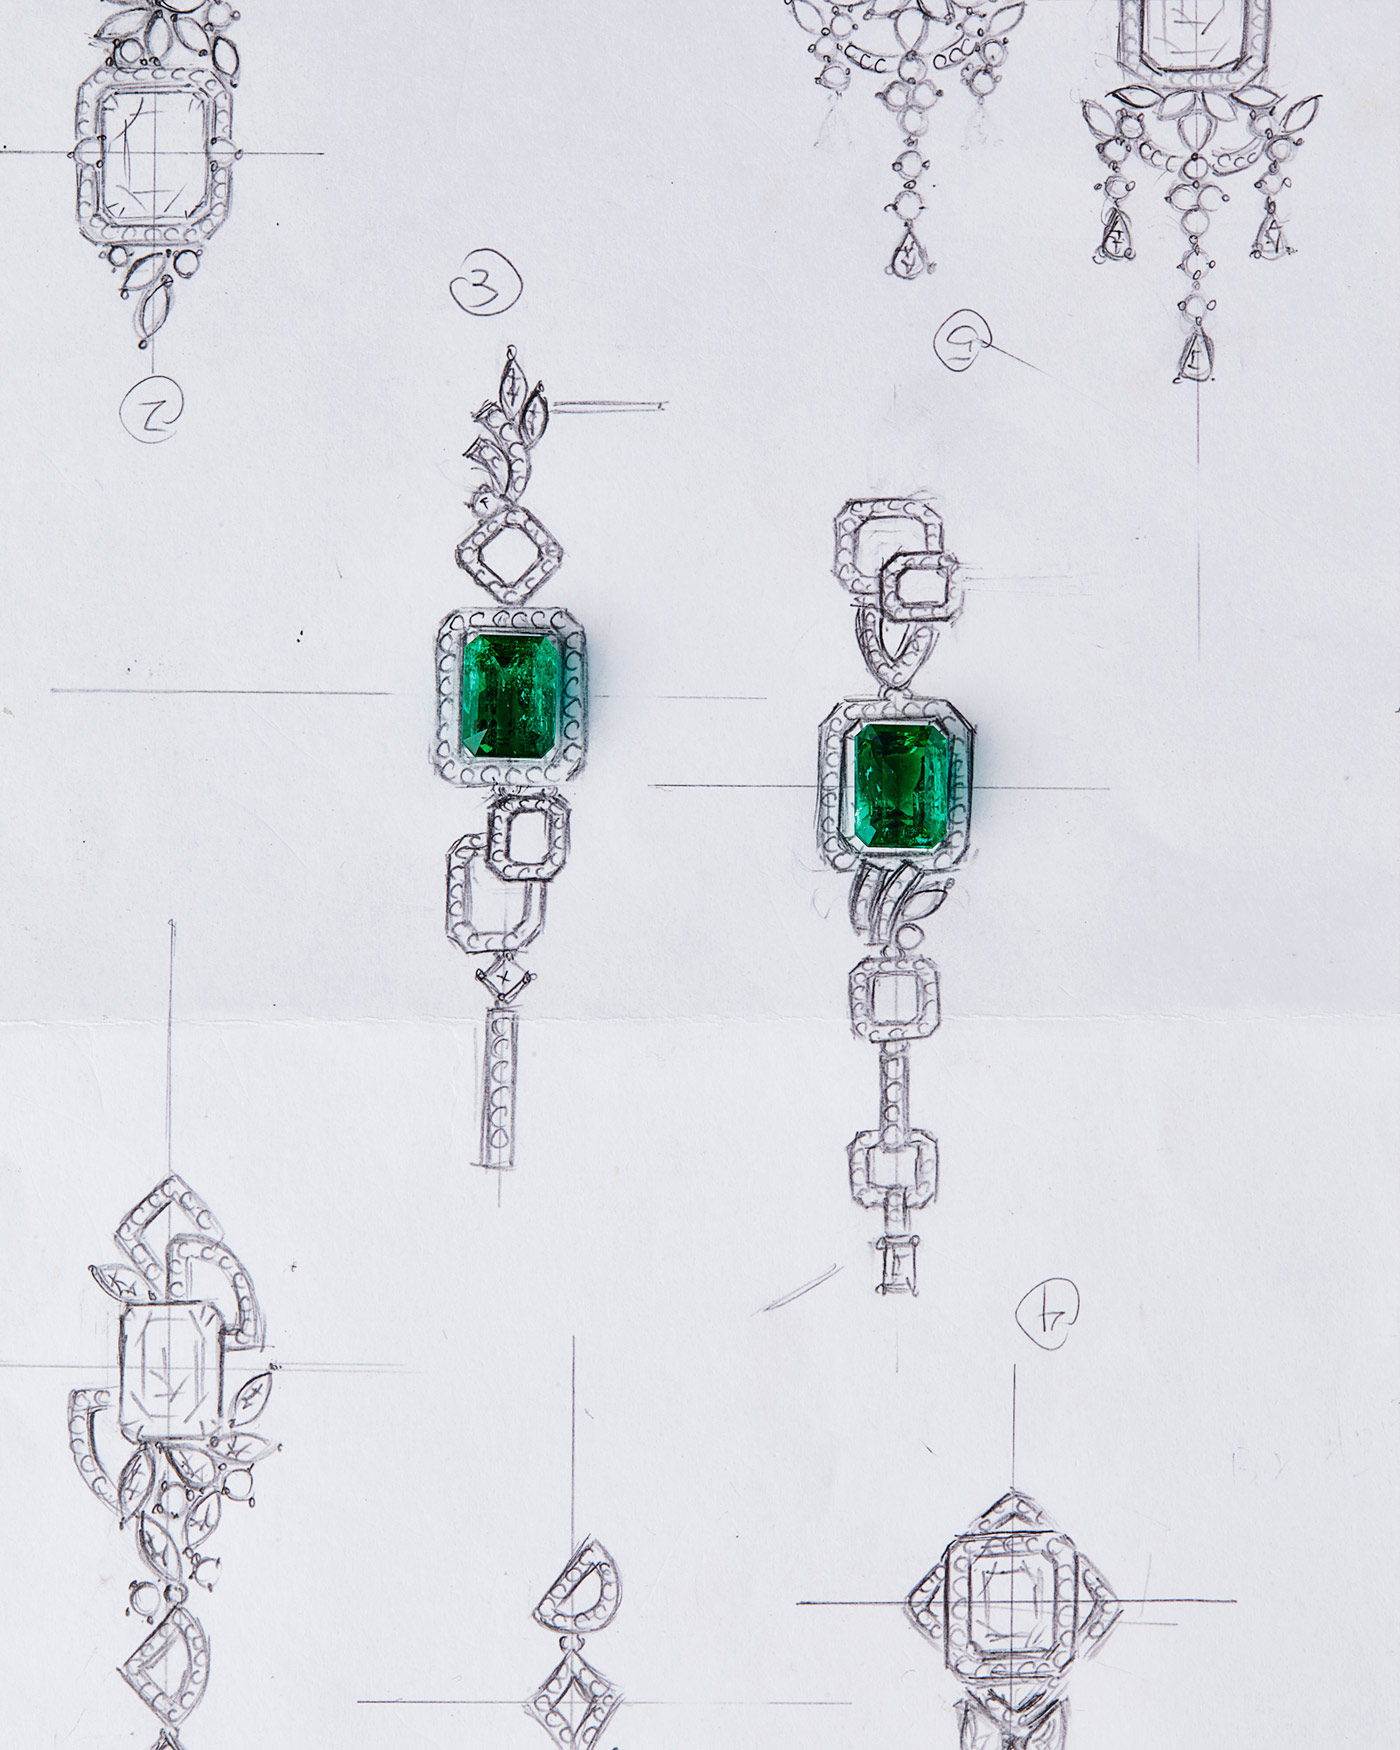 QIU Fine Jewelry earrings sketch